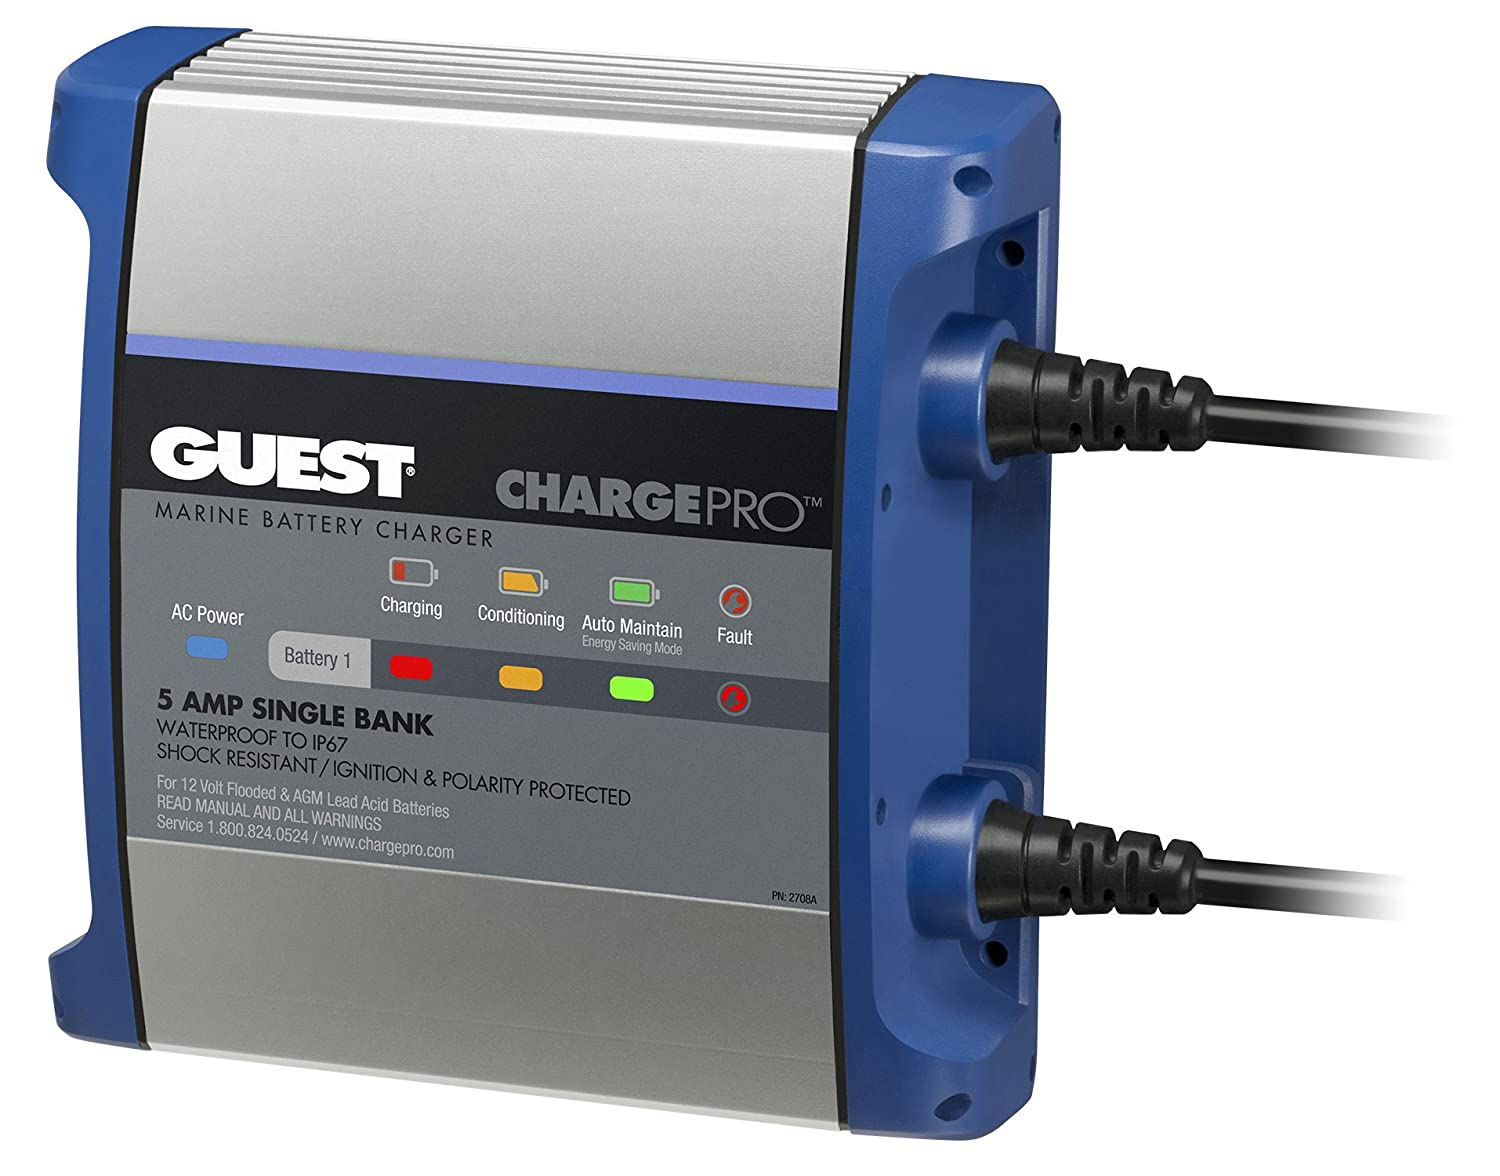 guest 2720a chargepro on board battery charger 20a 12v, 2 bank, 120v input Marine Bilge Pump Wiring Diagram